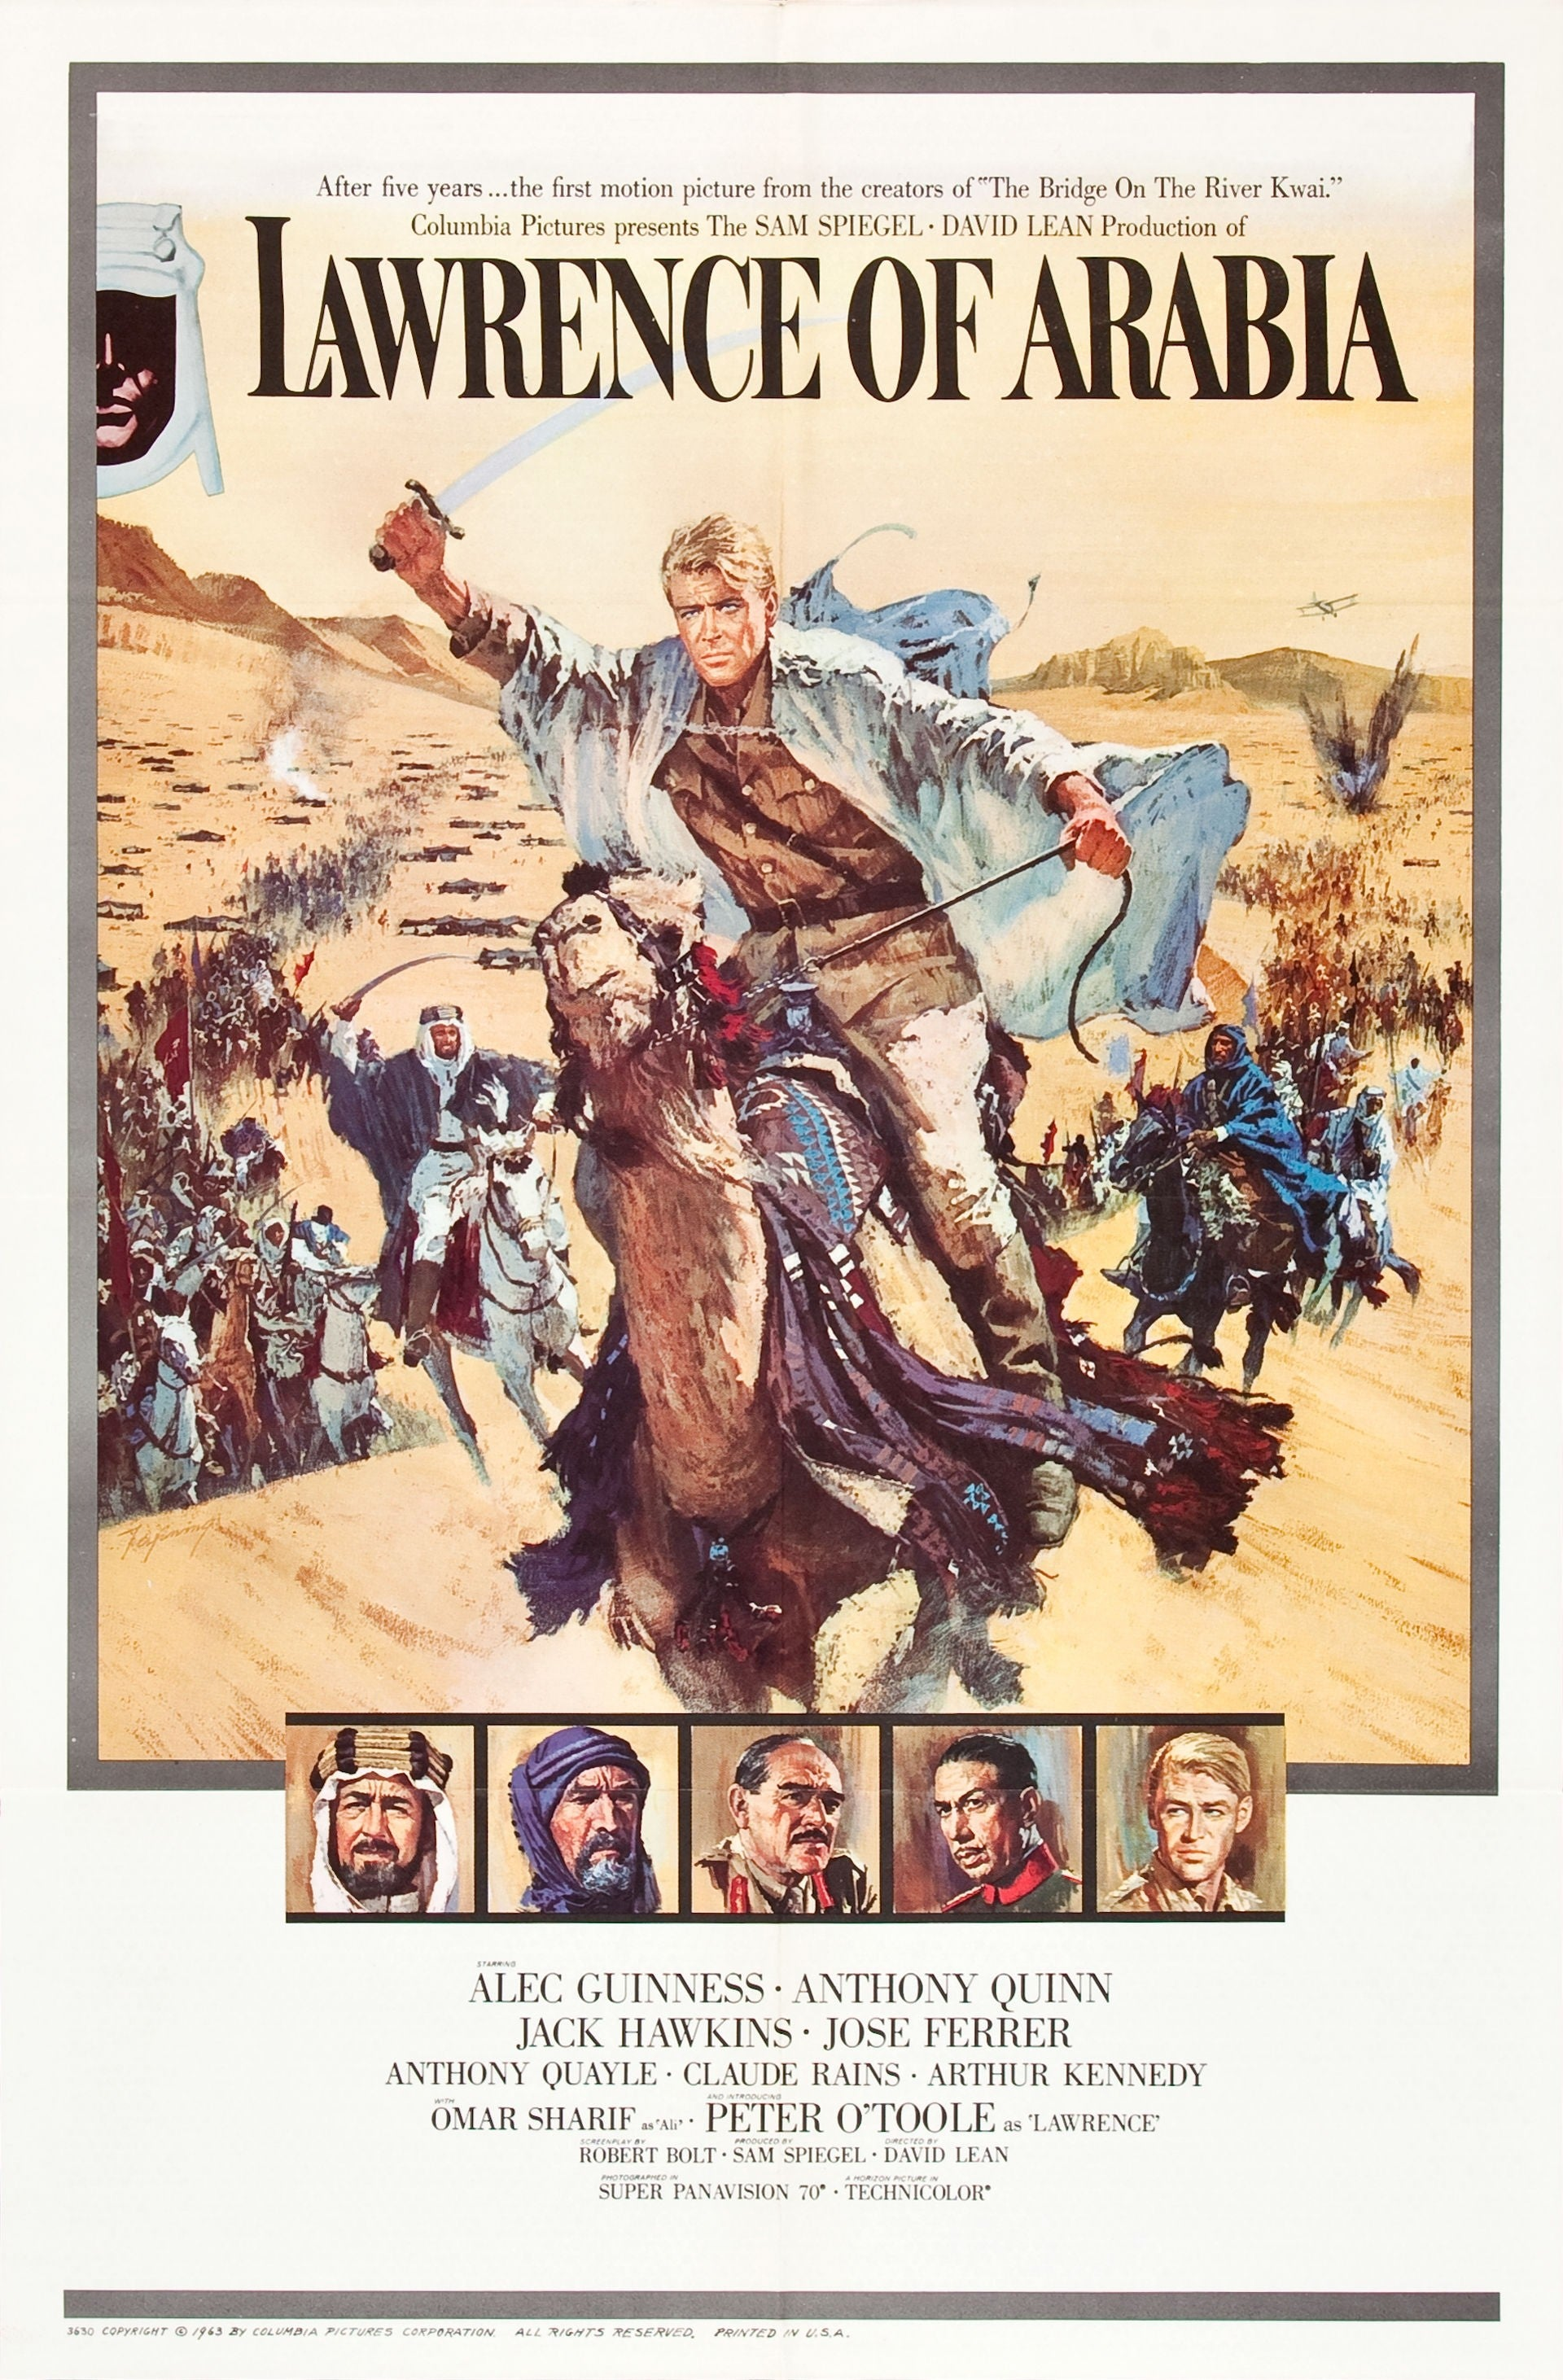 an analysis of the film lawrence of arabia Lawrence of arabia essays: over 180,000 lawrence of arabia essays, lawrence of arabia term papers, lawrence of arabia research paper, book reports 184.